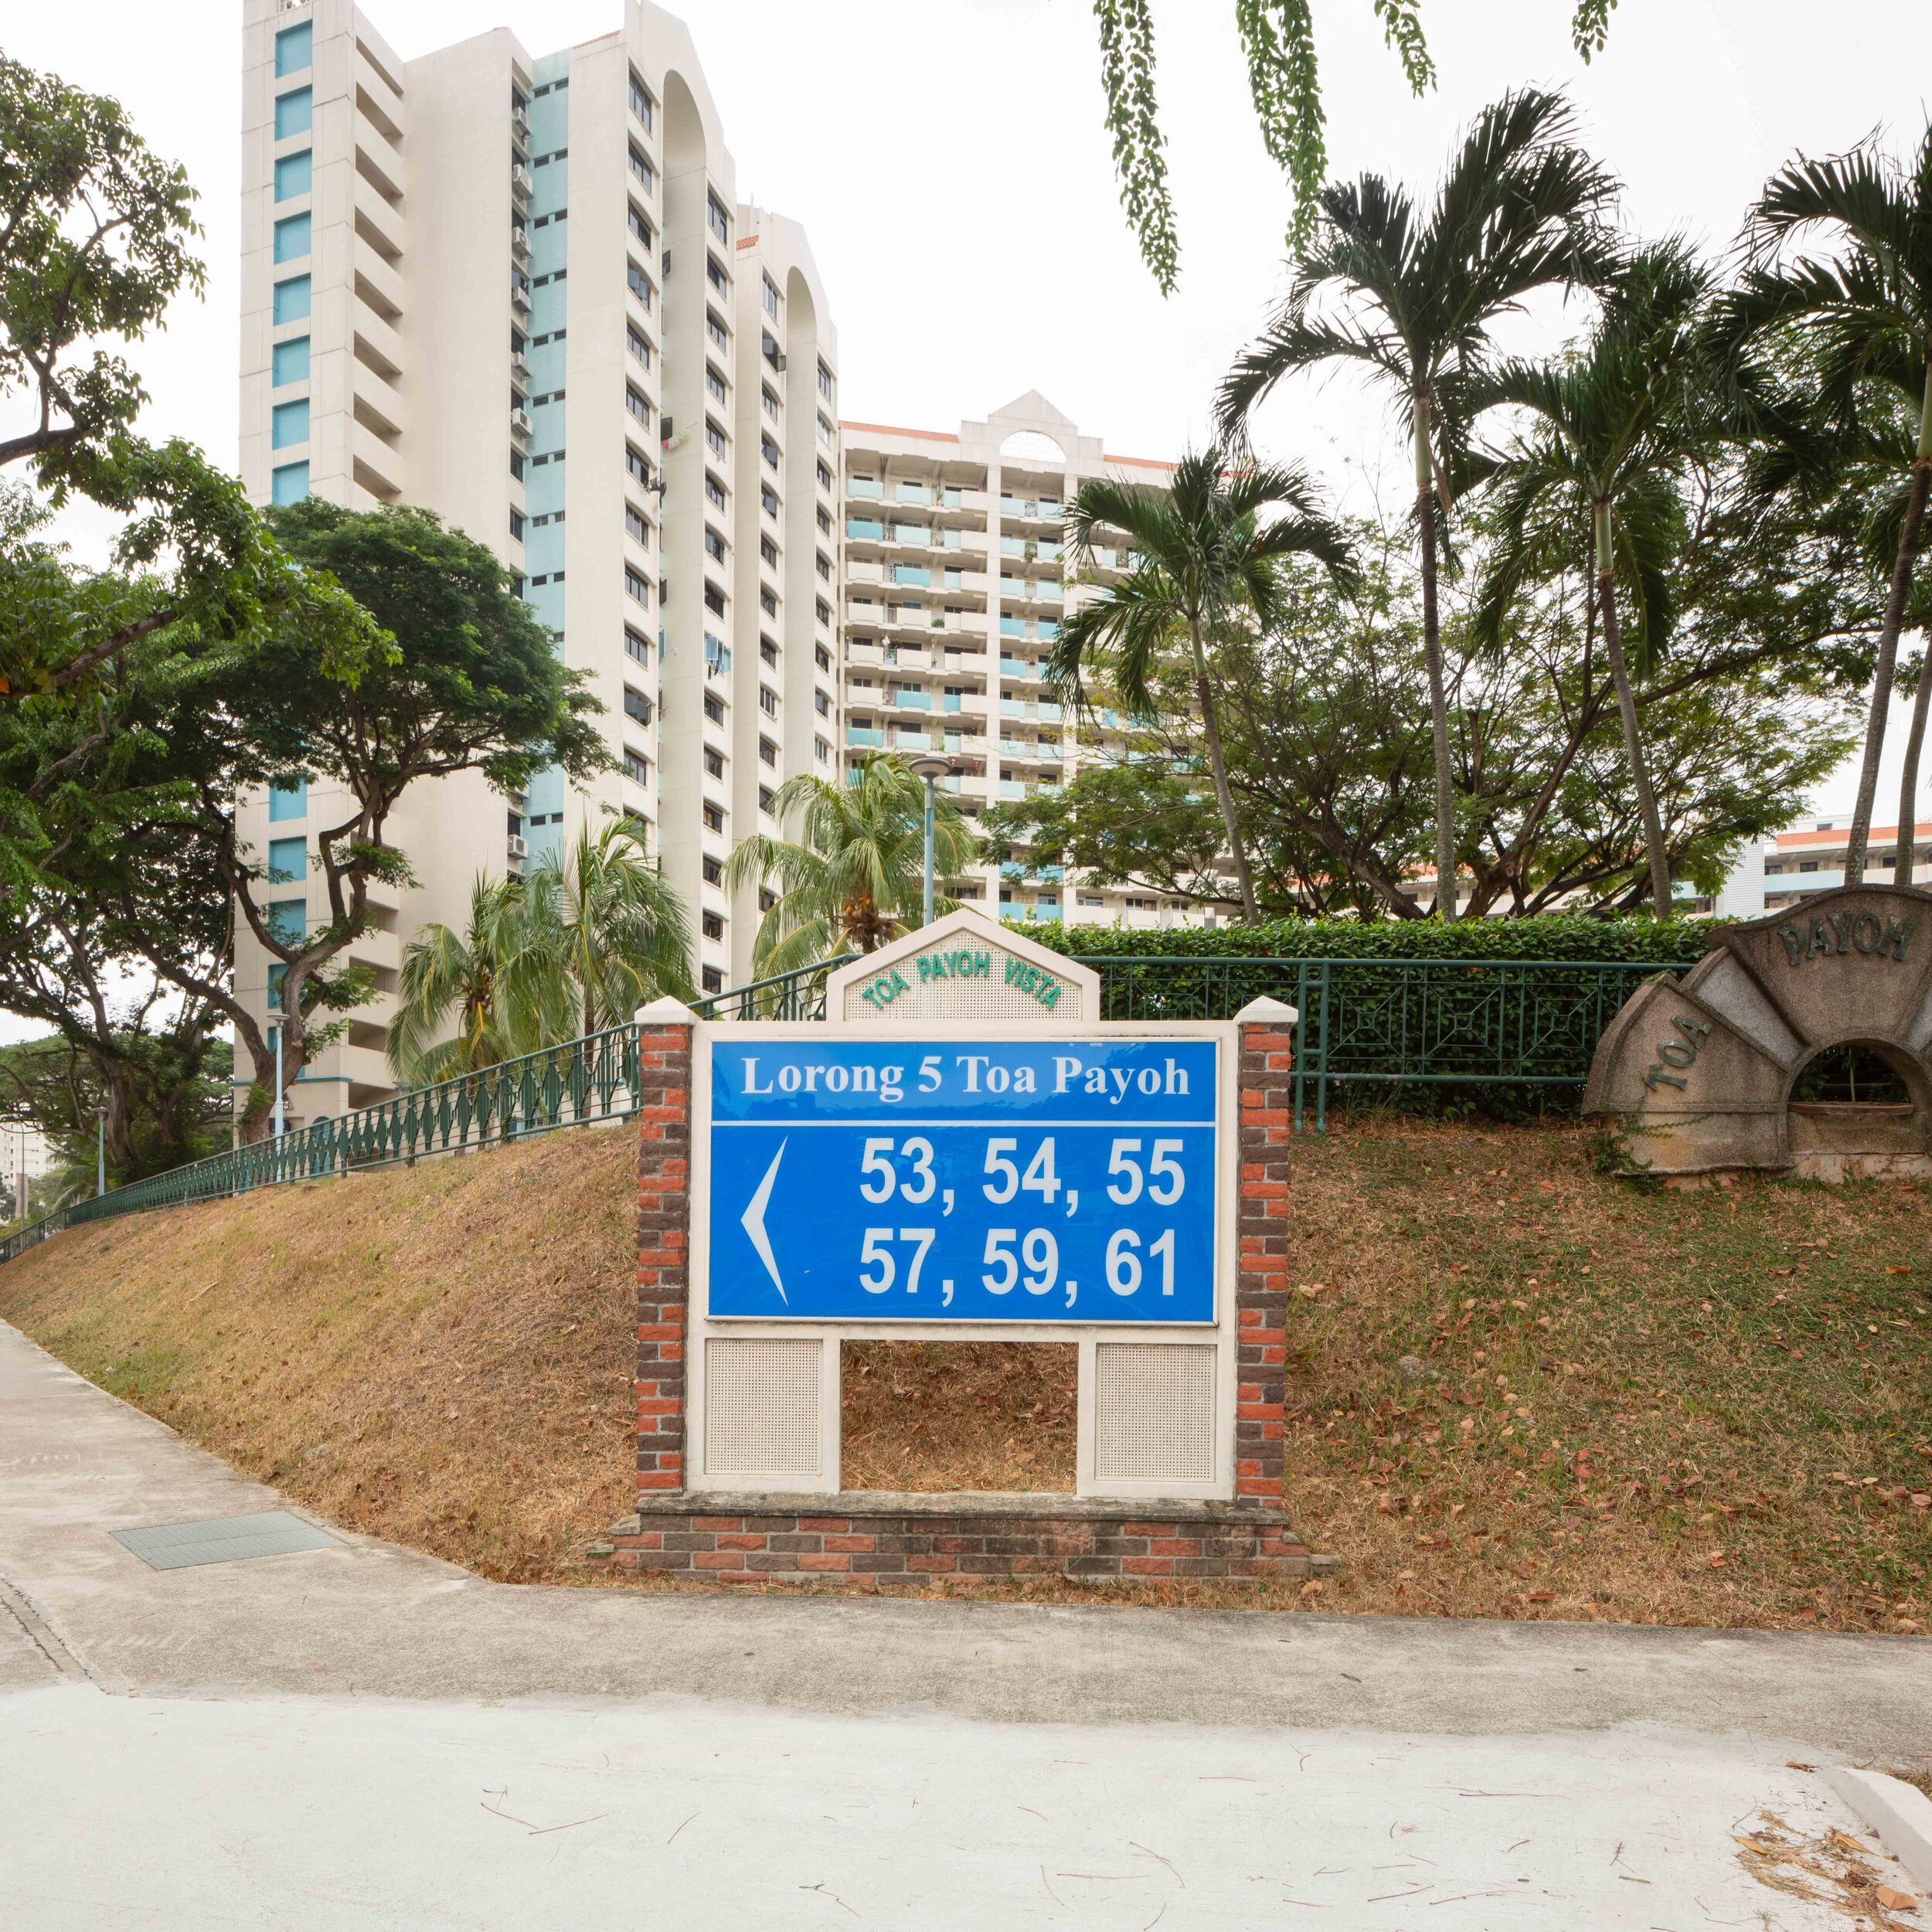 53 Lorong 5 Toa Payoh 190920 119, image by Andrew Campbell Nelson.jpg